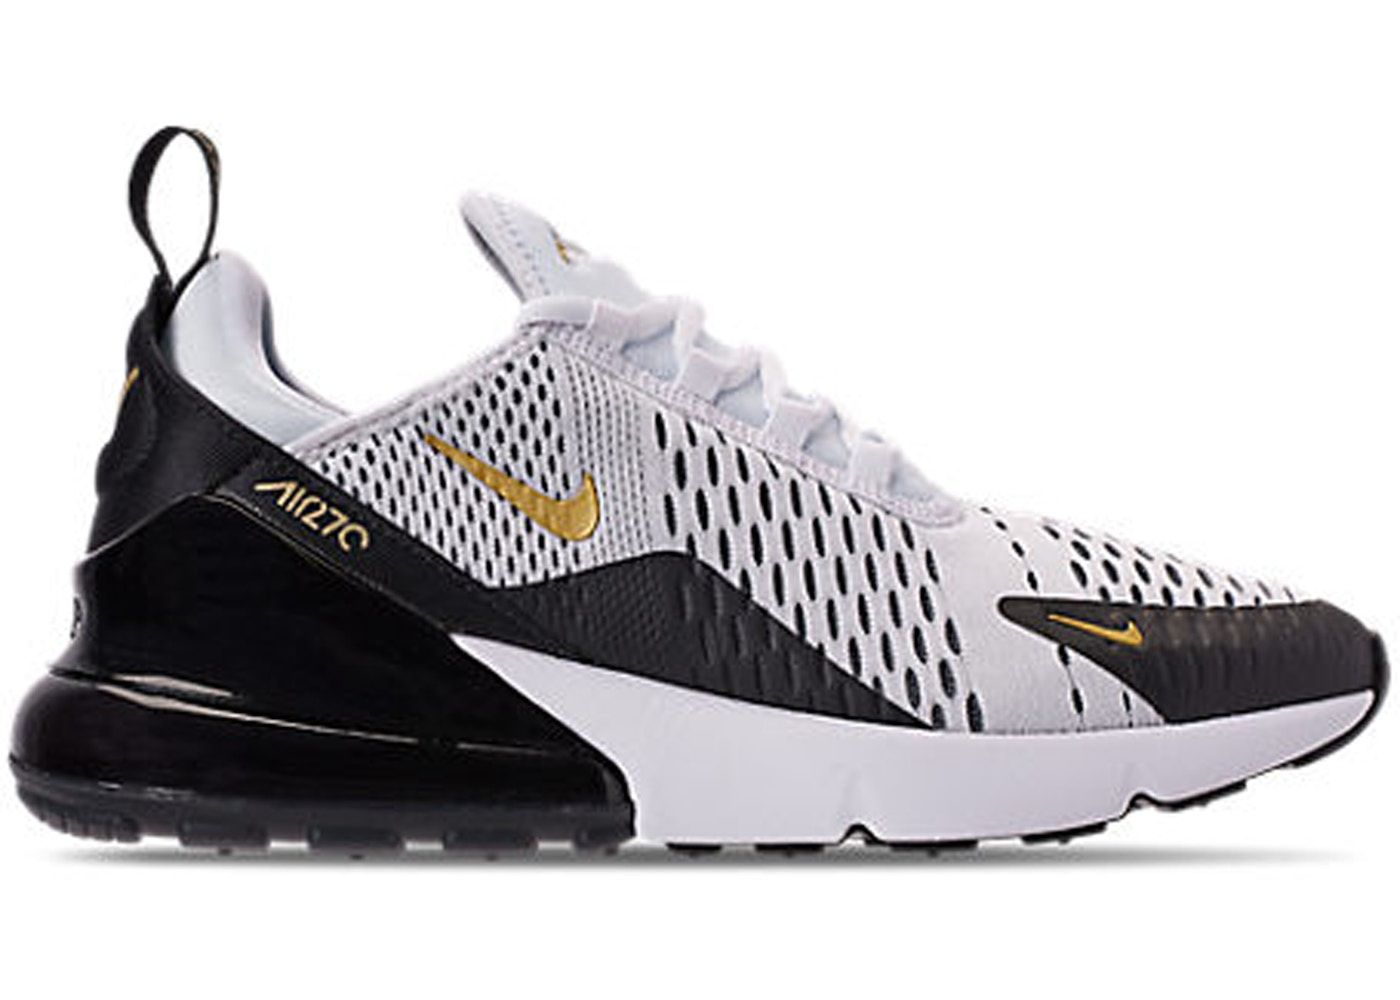 Check out the Air Max 270 White Metallic Gold Black available on StockX 702465ce6610